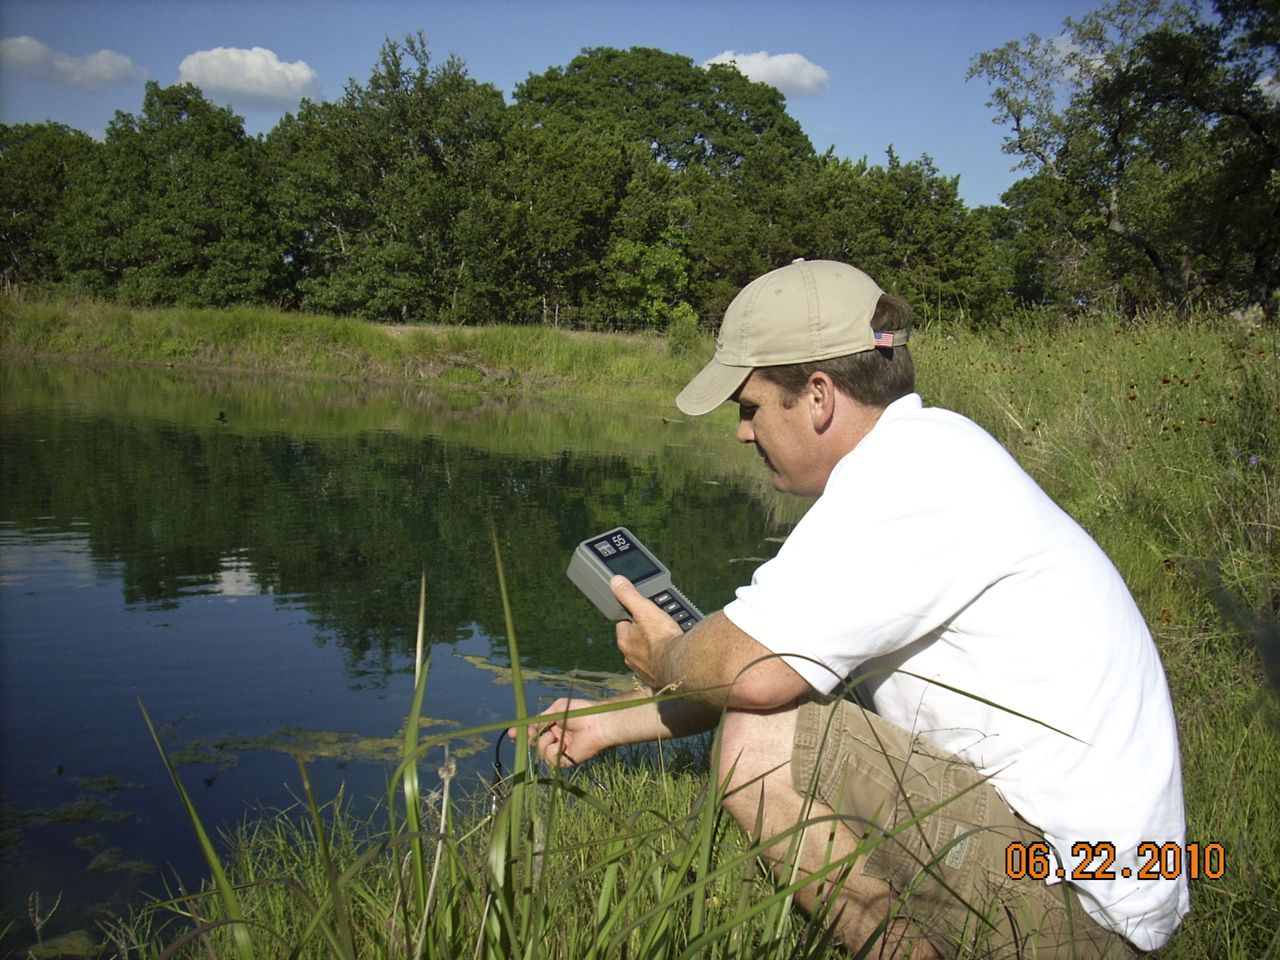 Pond Water Testing Pond Water Quality Management Clear Muddy Pond Water How Does Water Quality